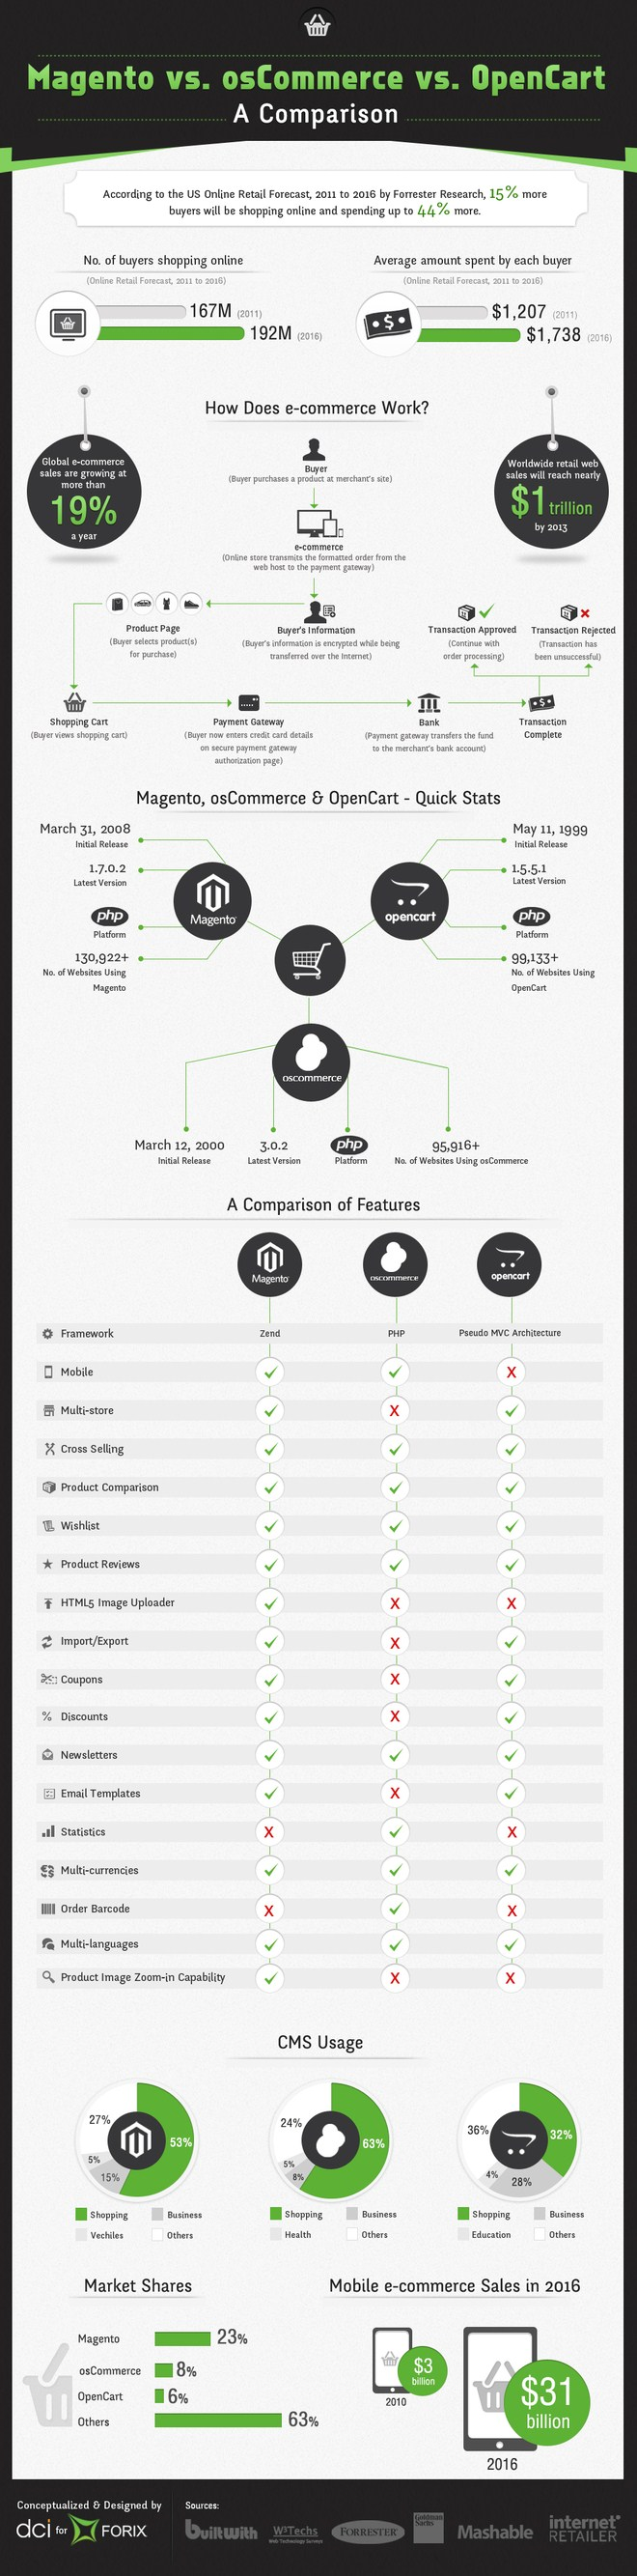 Magento Vs OS Commerce and OpenCart Infographic